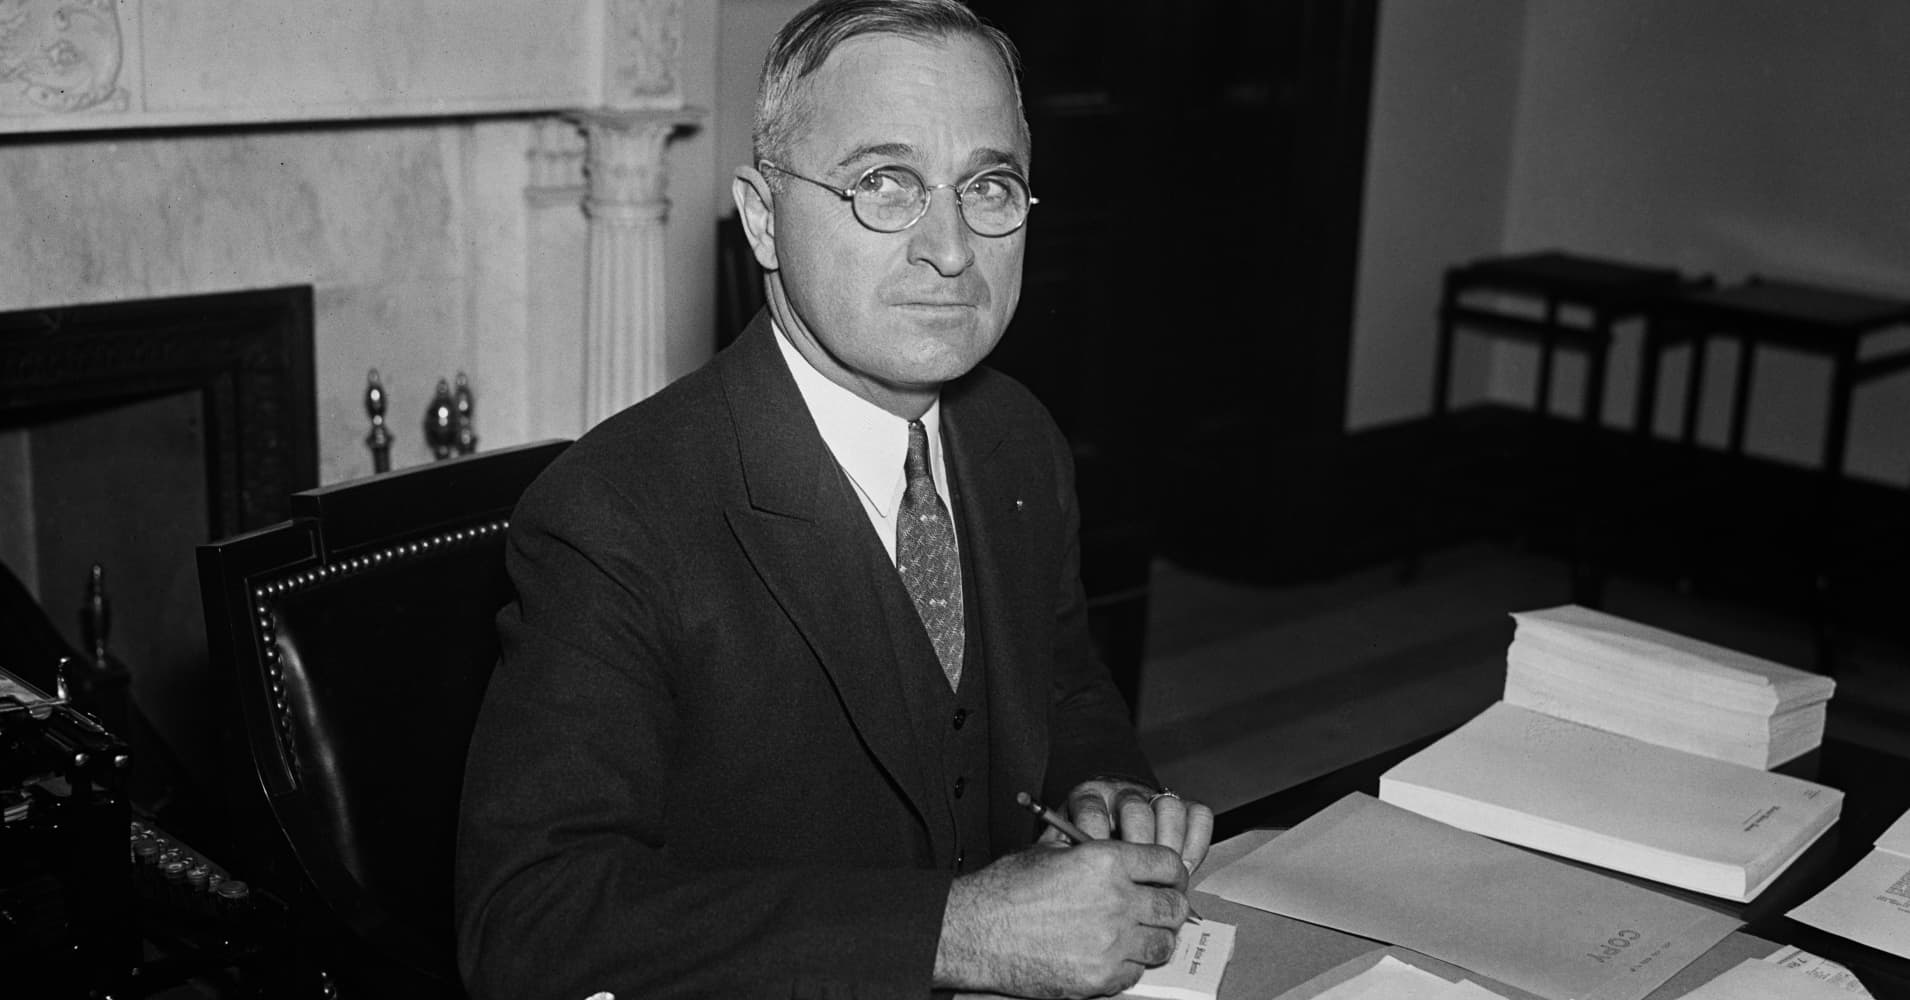 Harry S. Truman, the 33rd president of the United States, was also the last president to wear glasses in public.